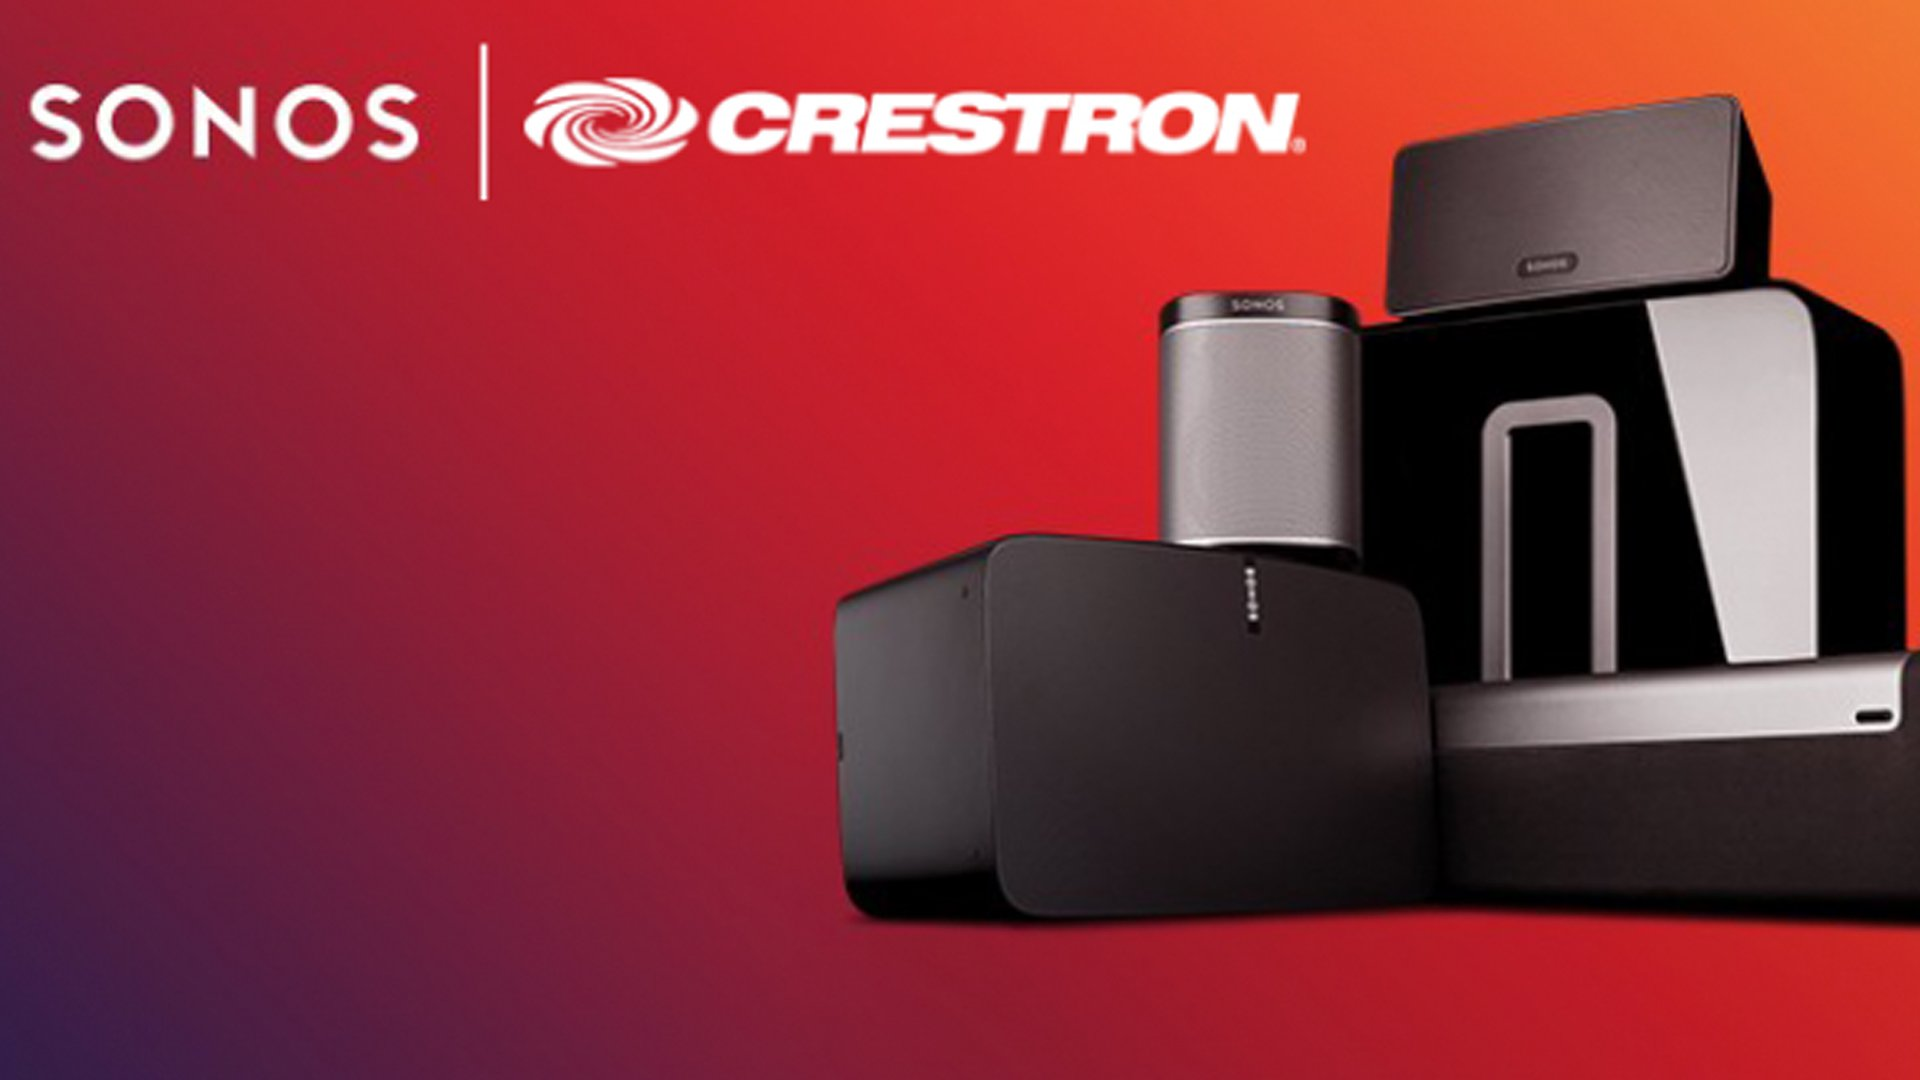 New Updates On Our Crestron Sonos Module